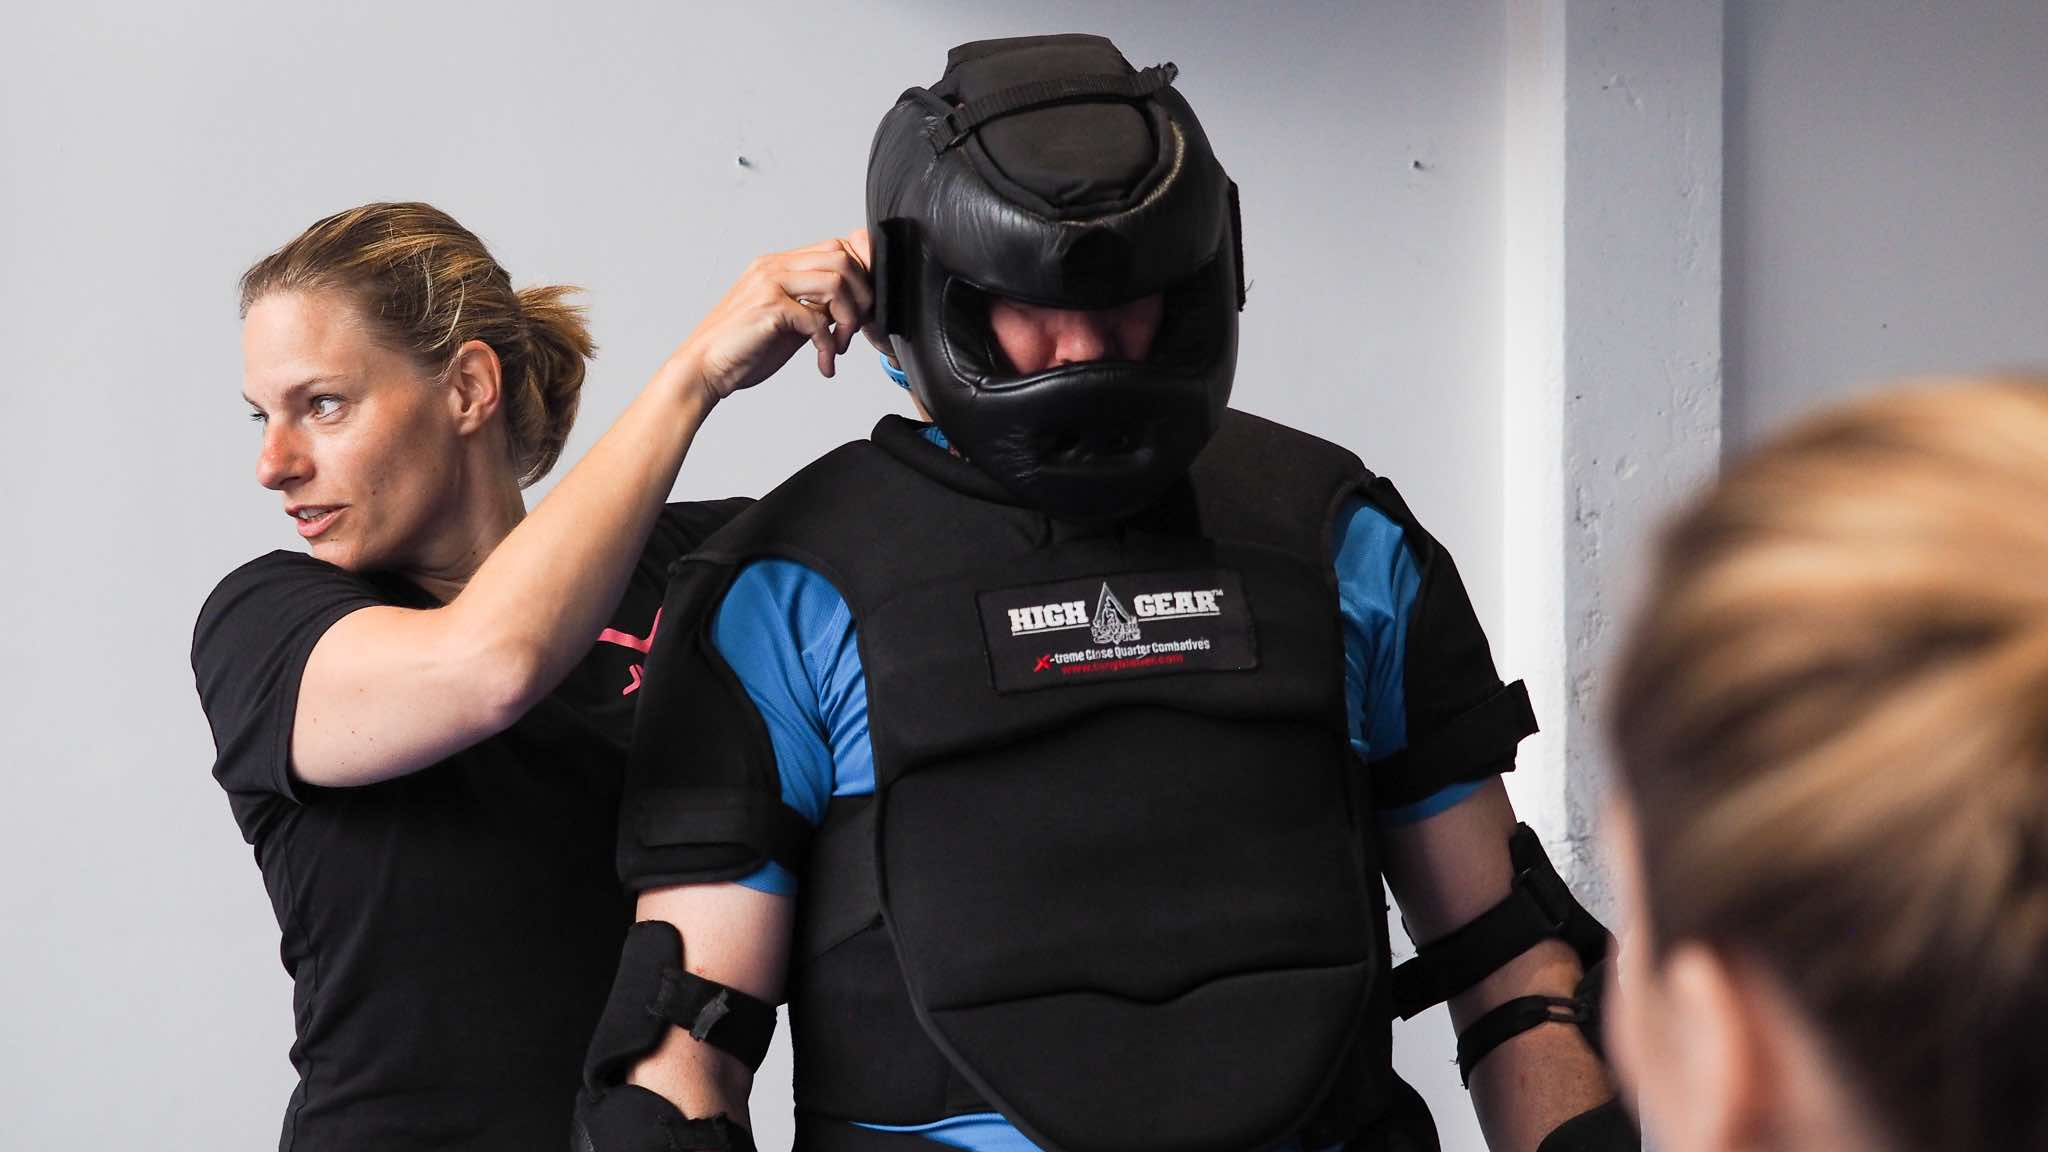 """Chief Trainer Synthia Stoffer prepping the """"man in pak"""""""